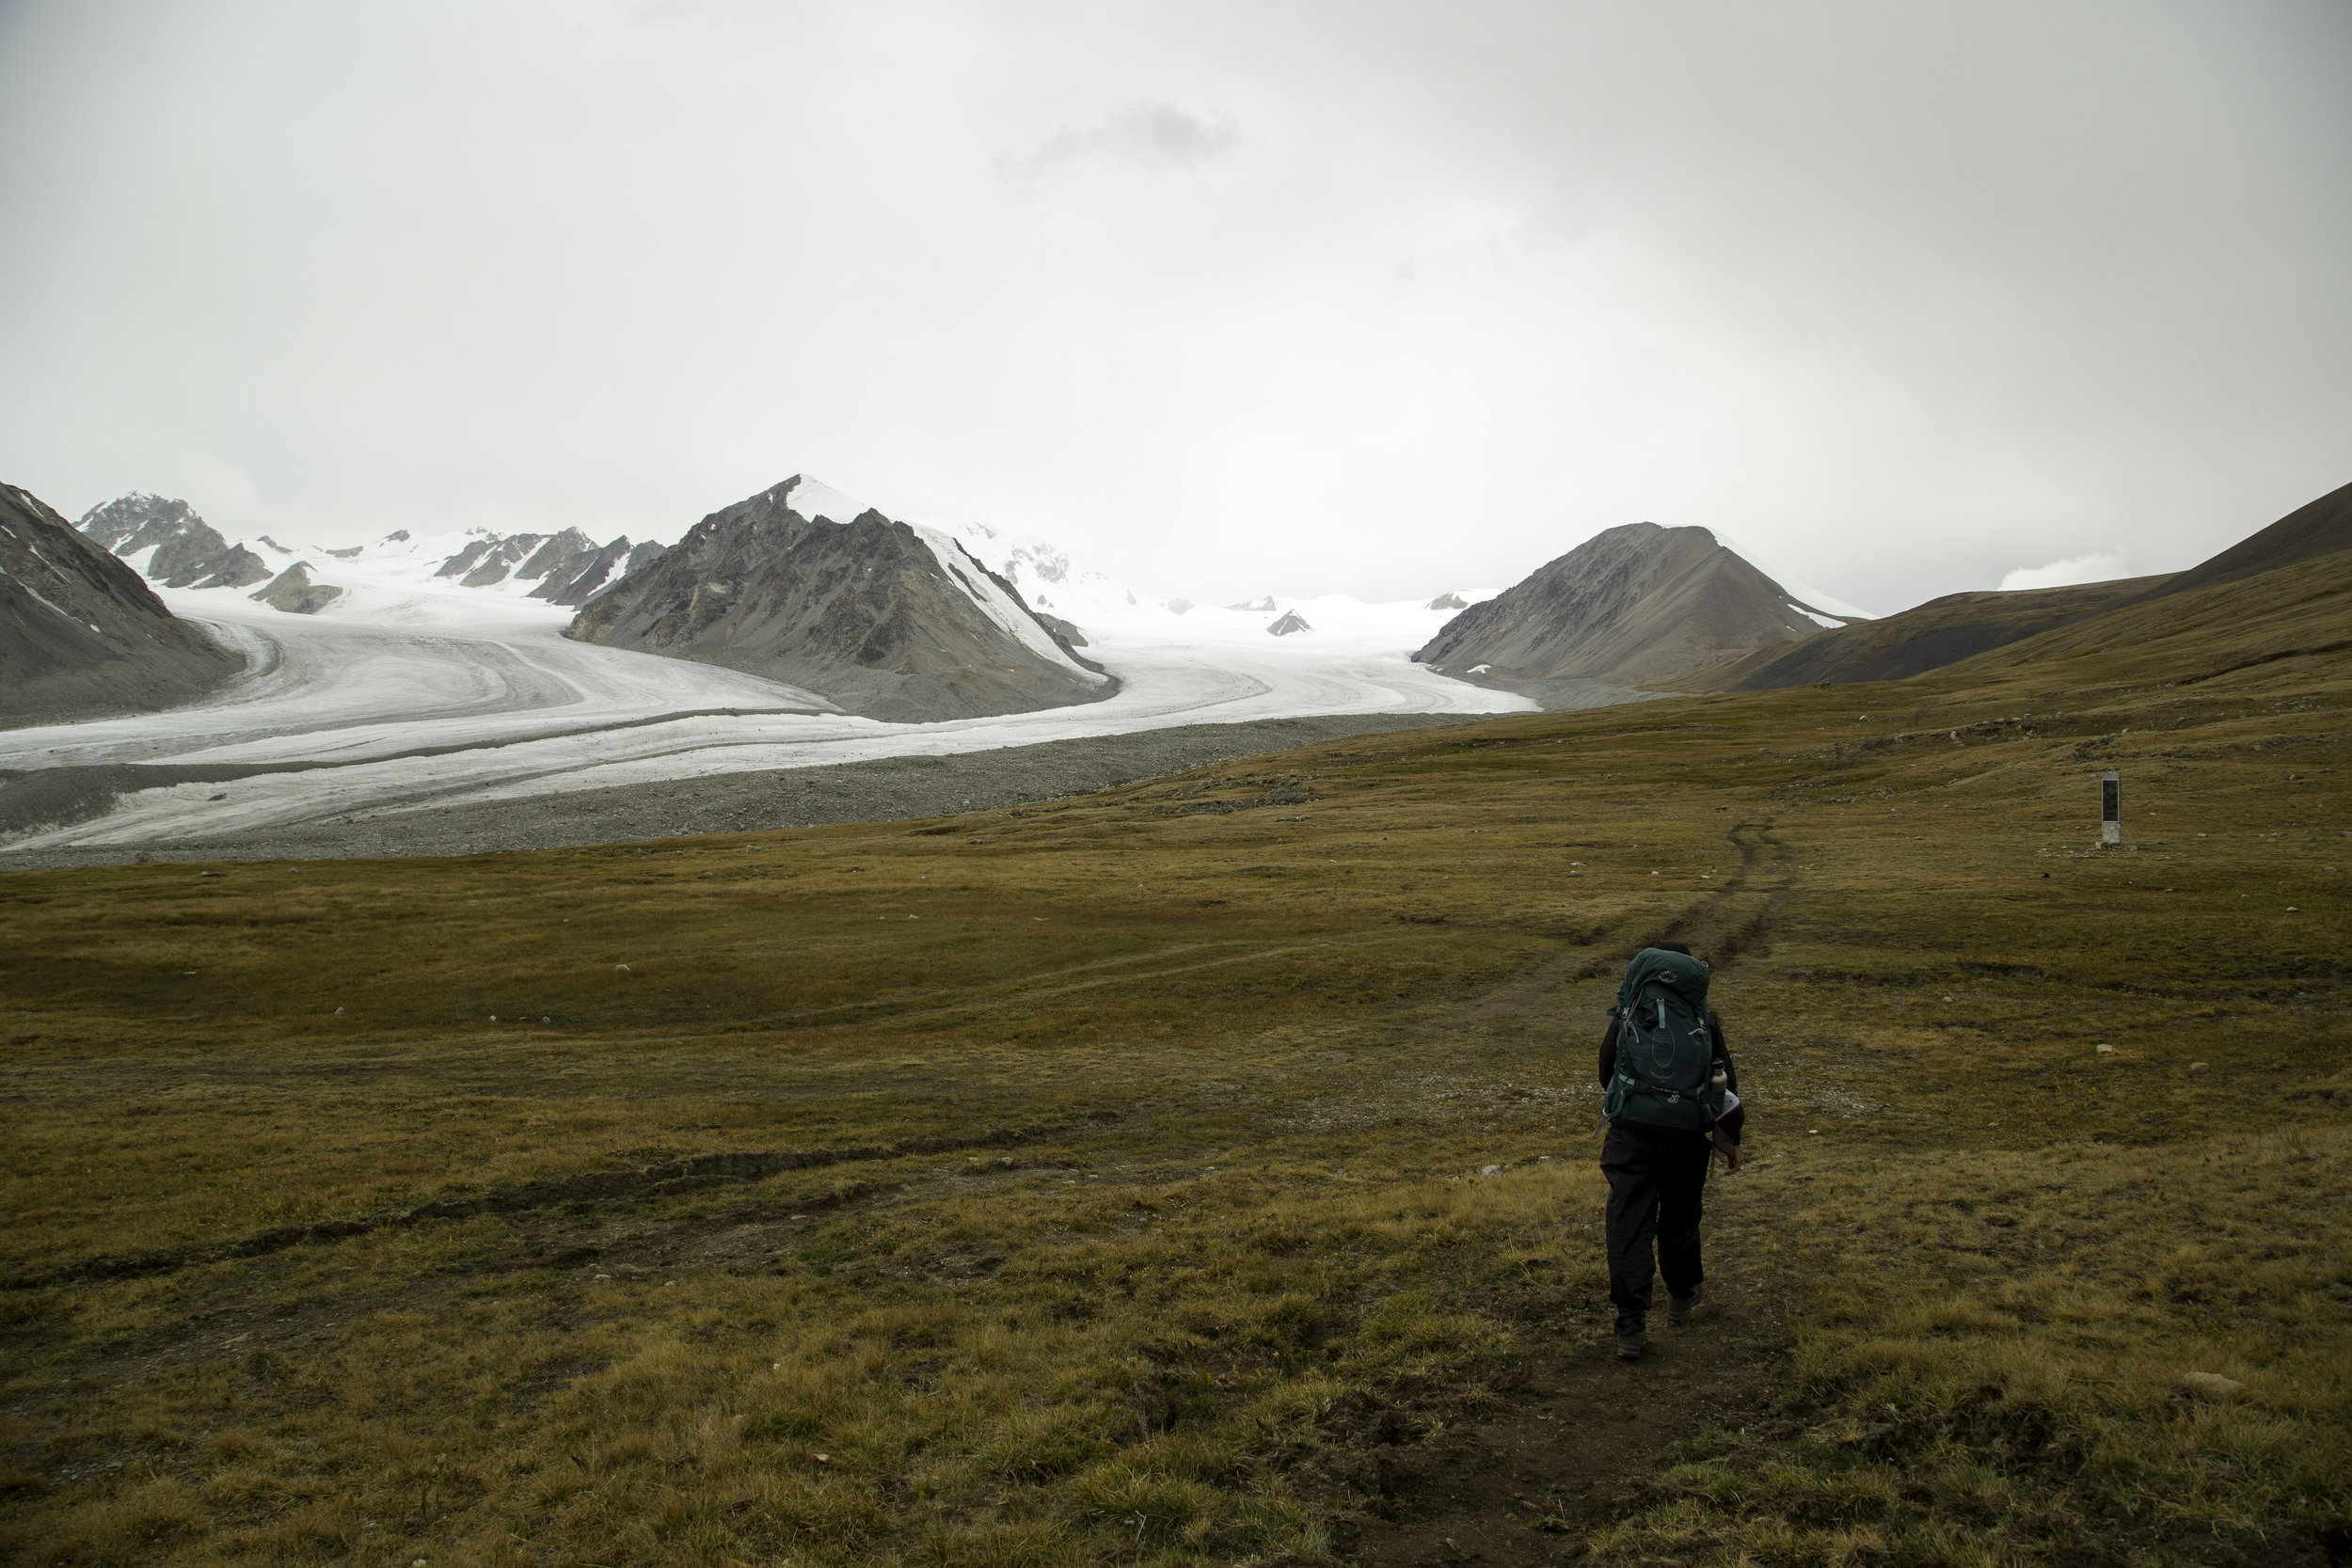 Walking to base camp - Tavan Bogd National Park - Mongolia